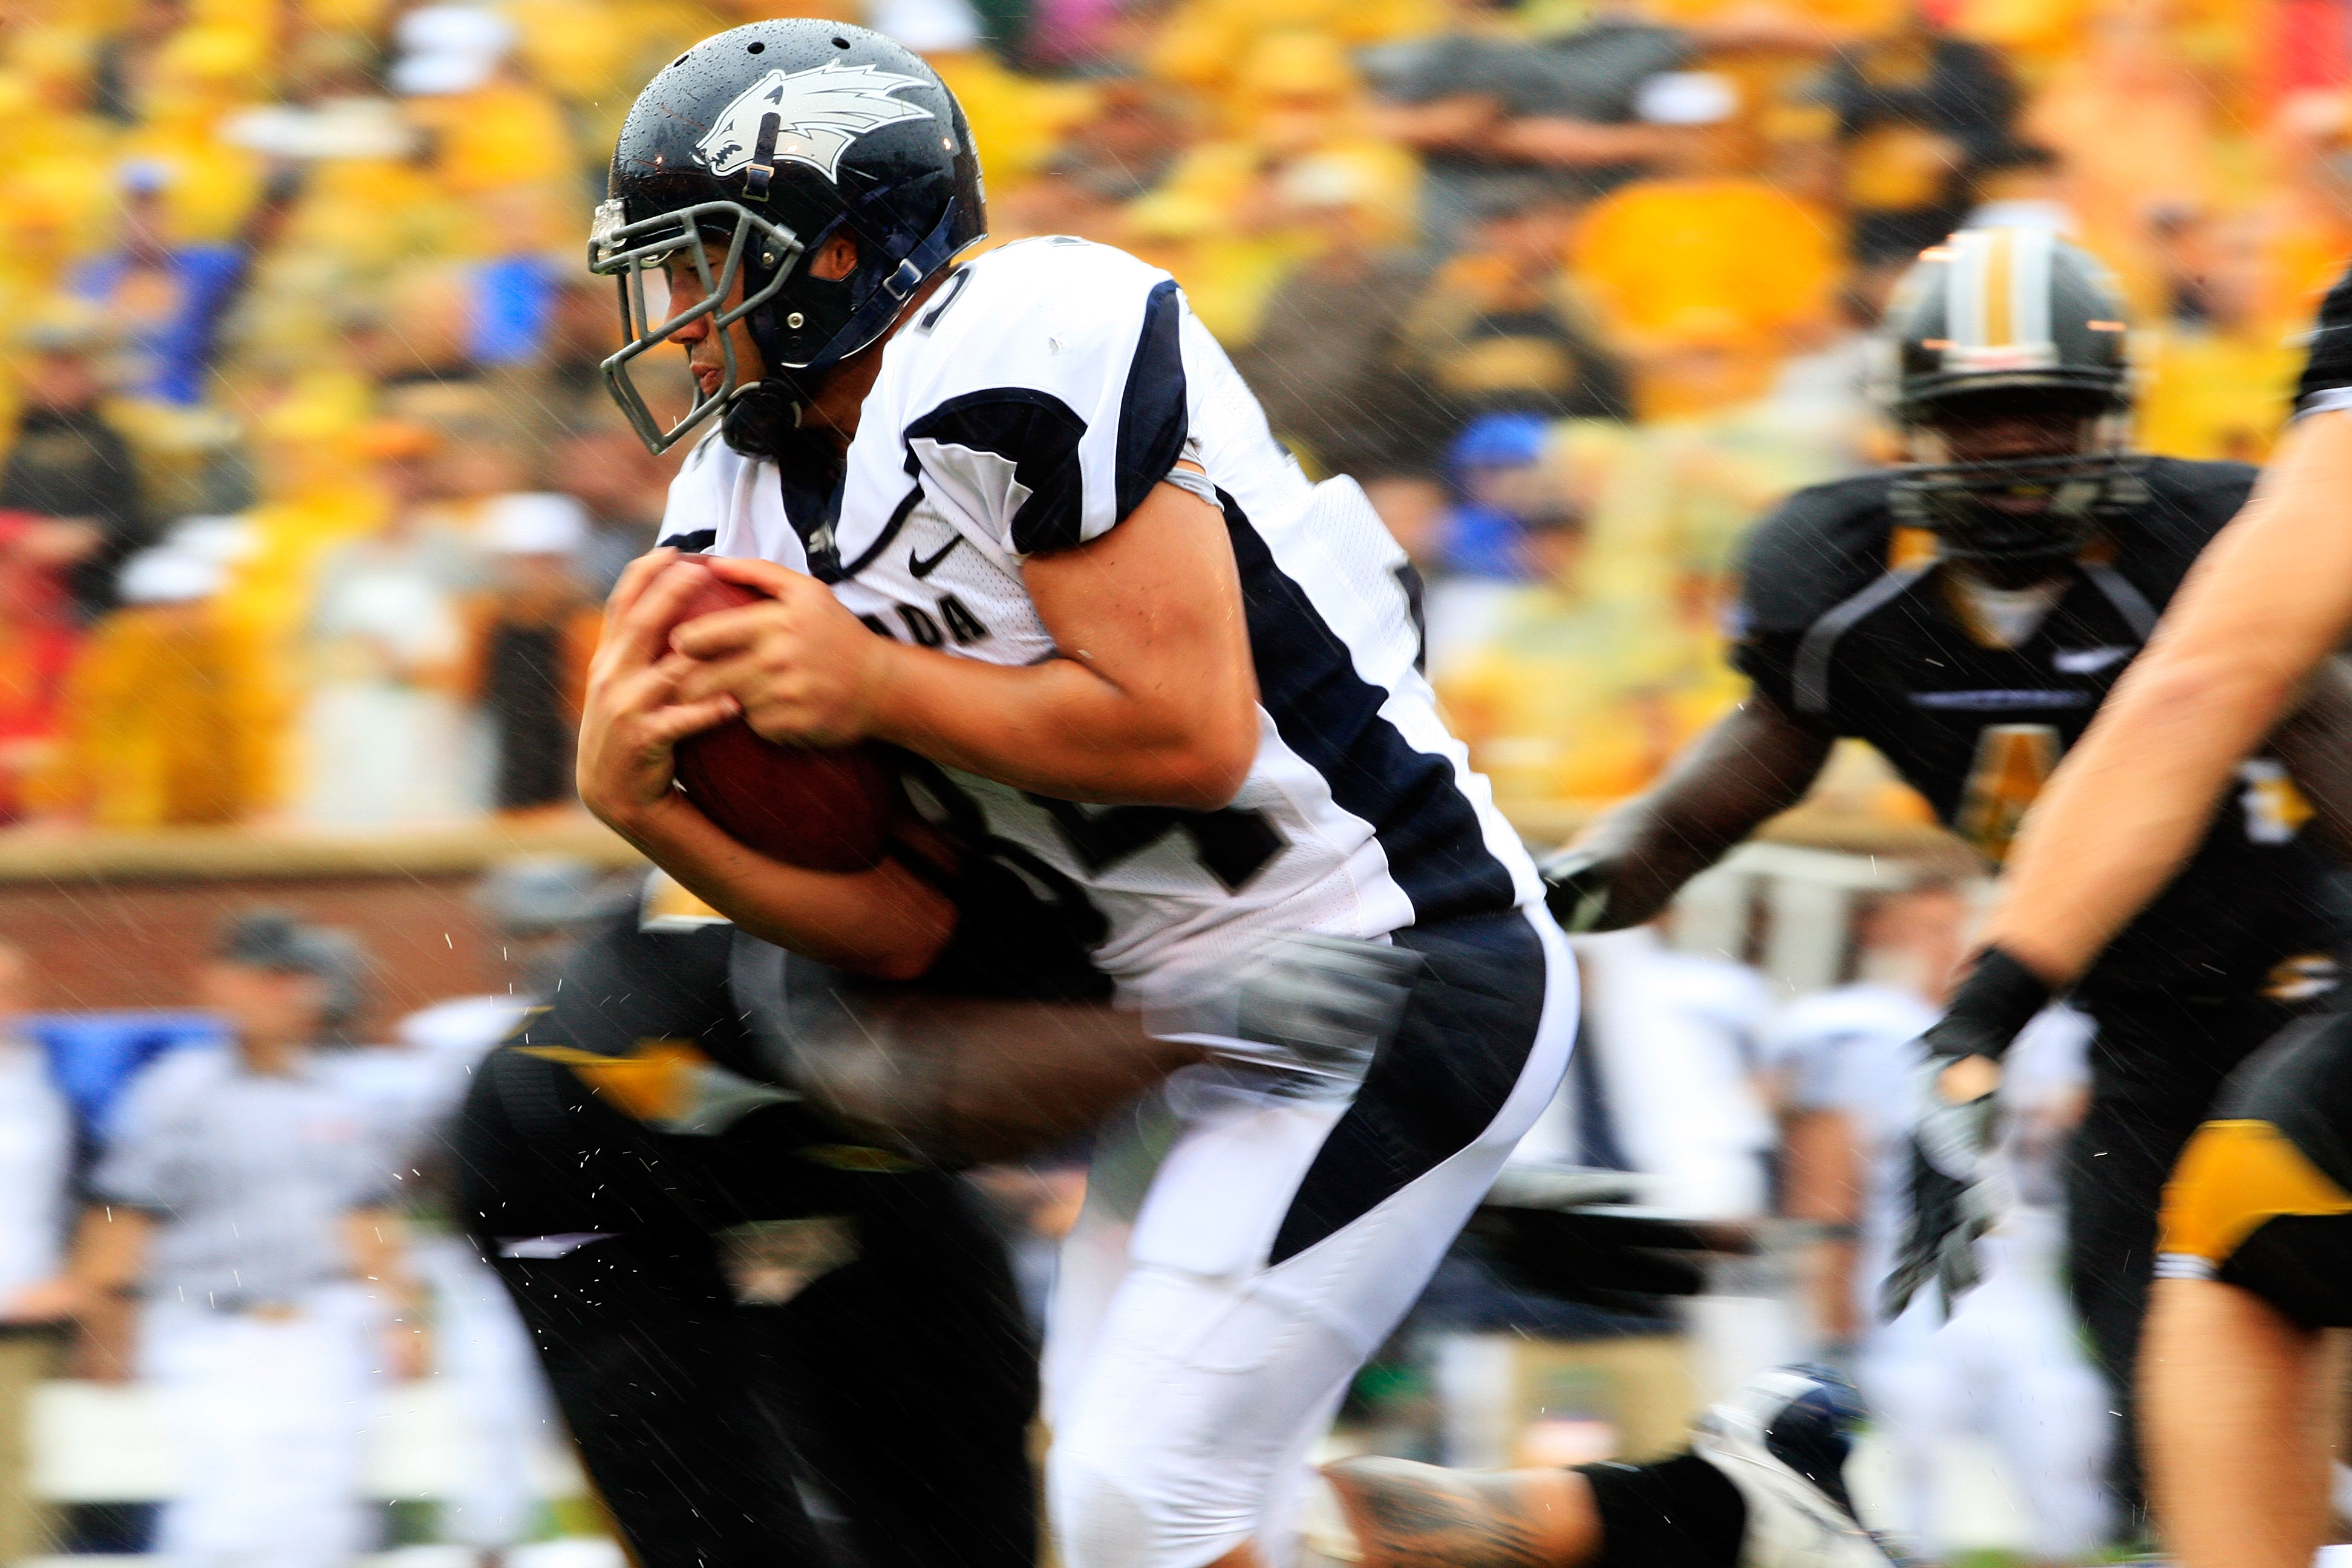 COLUMBIA, MO - SEPTEMBER 13:  Vai Taua #34 the Nevada Wolf Pack carries the ball during the first half of the game against the Missouri Tigers on September 13, 2008 at Memorial Stadium in Columbia, Missouri.  (Photo by Jamie Squire/Getty Images)